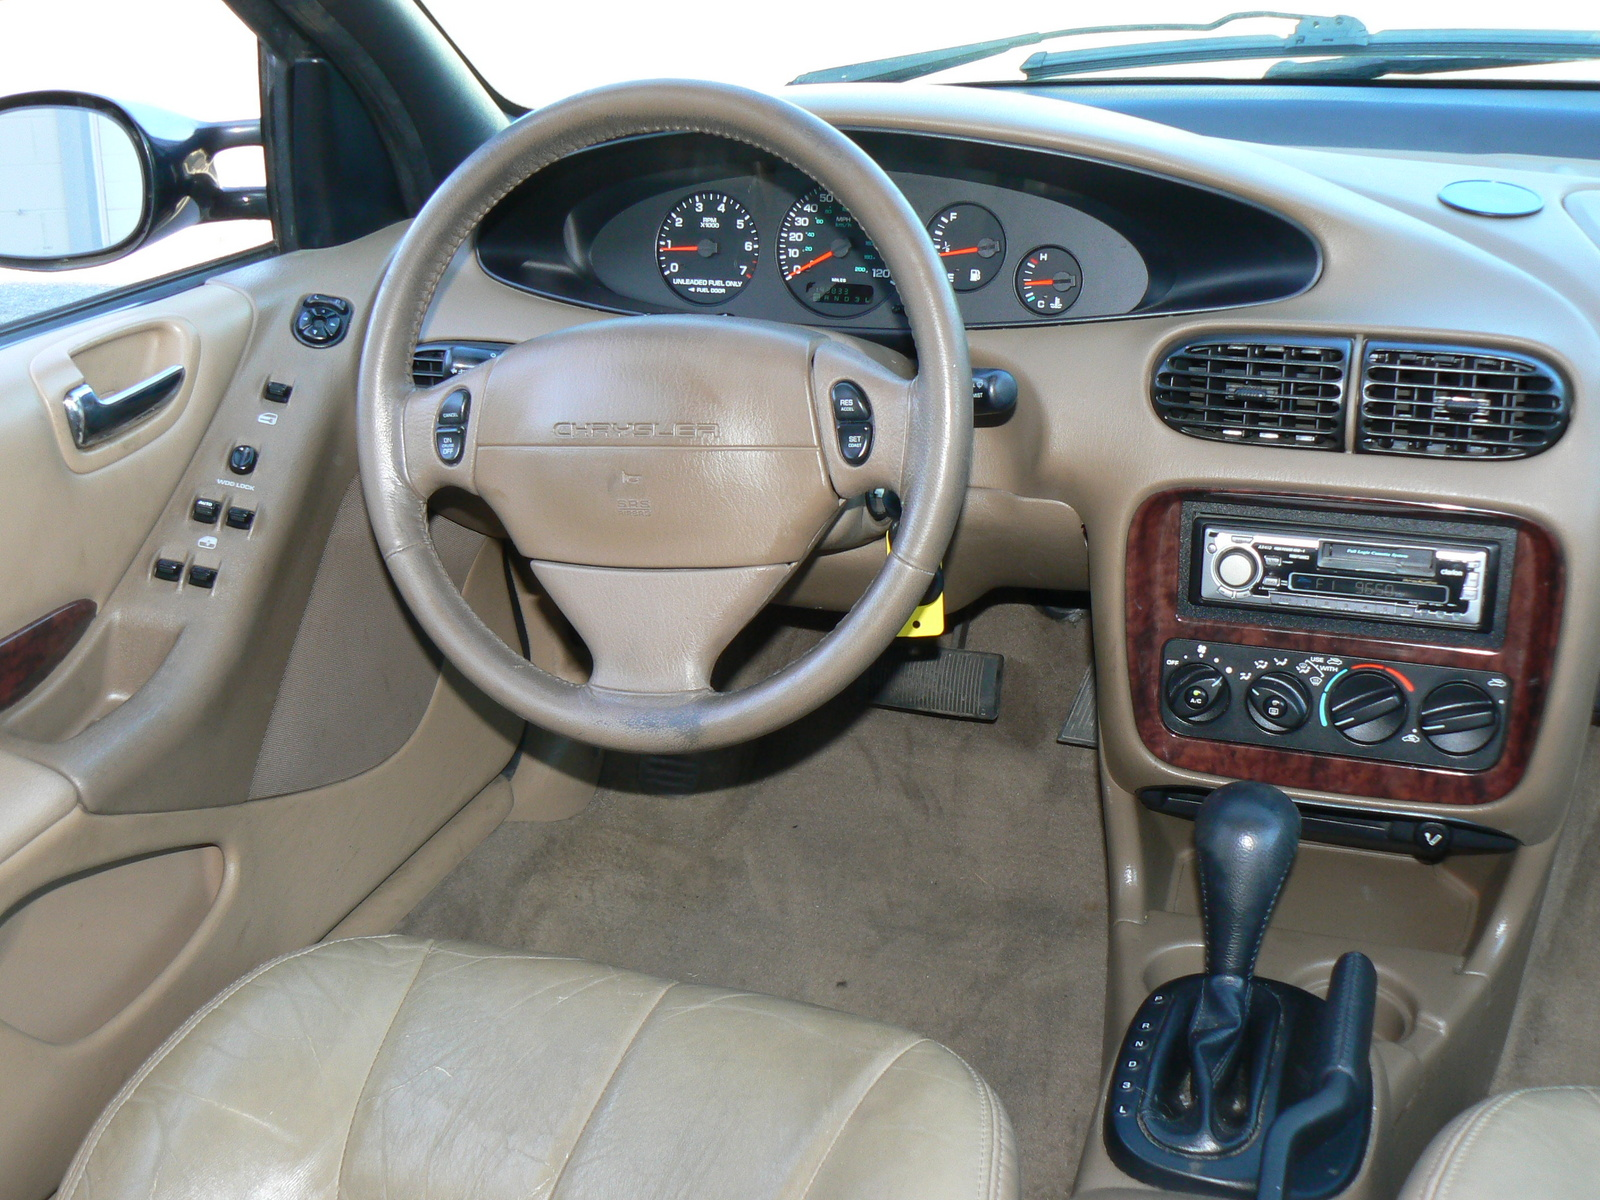 Chrysler Cirrus interior #1